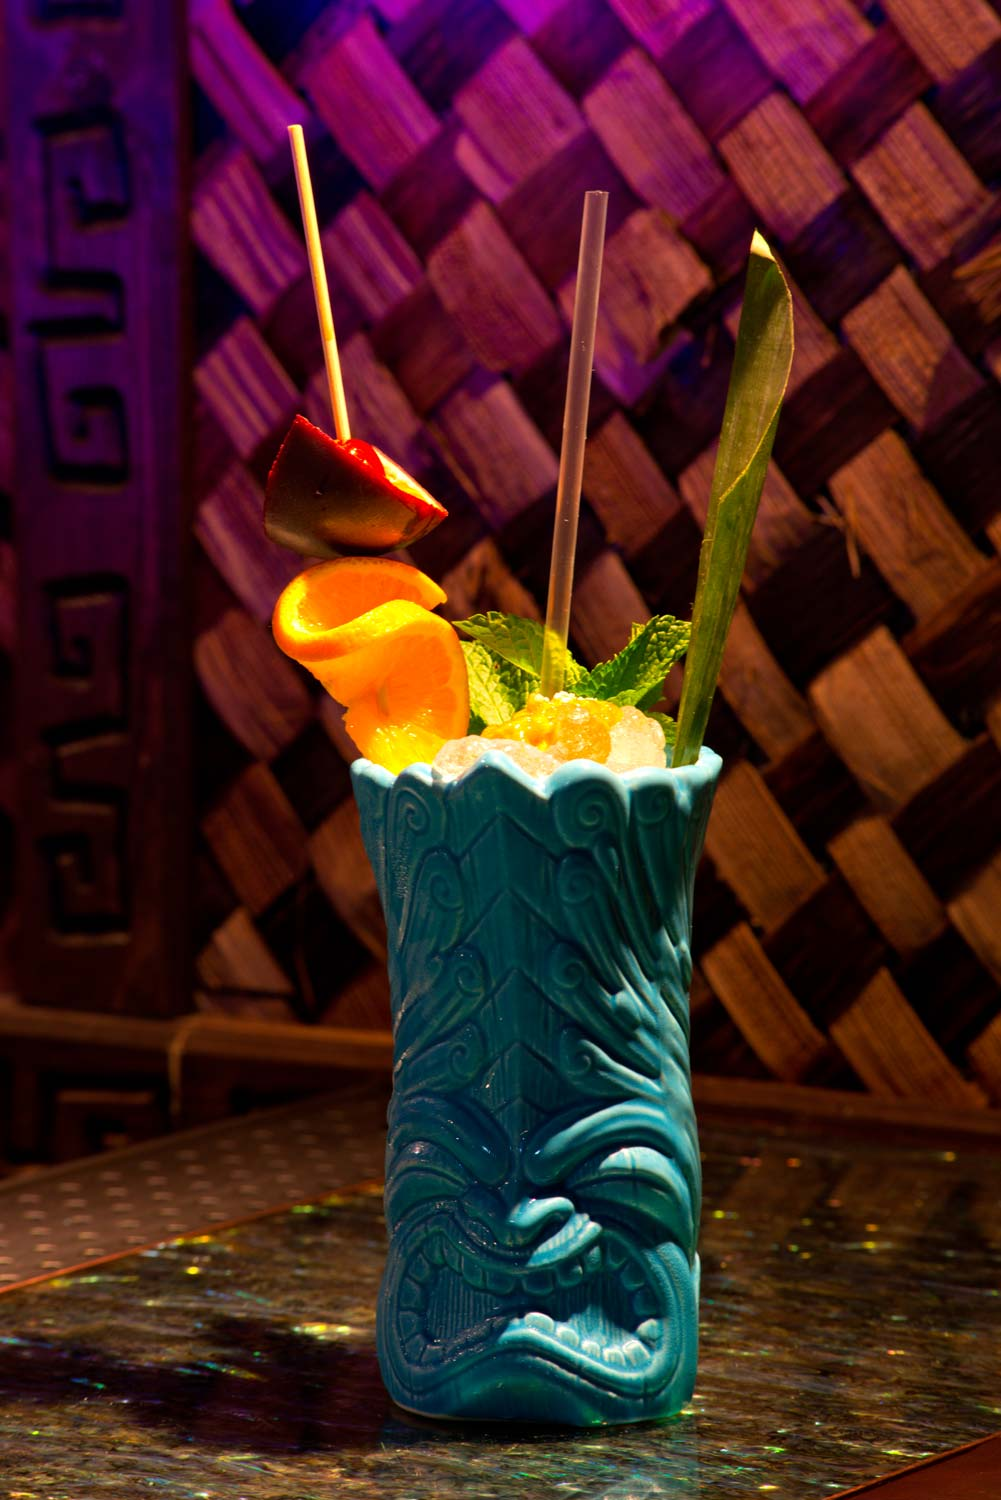 Pufferfish at Mahiki Kensington a Full-Blooded Polynesian Culinary Experience 6